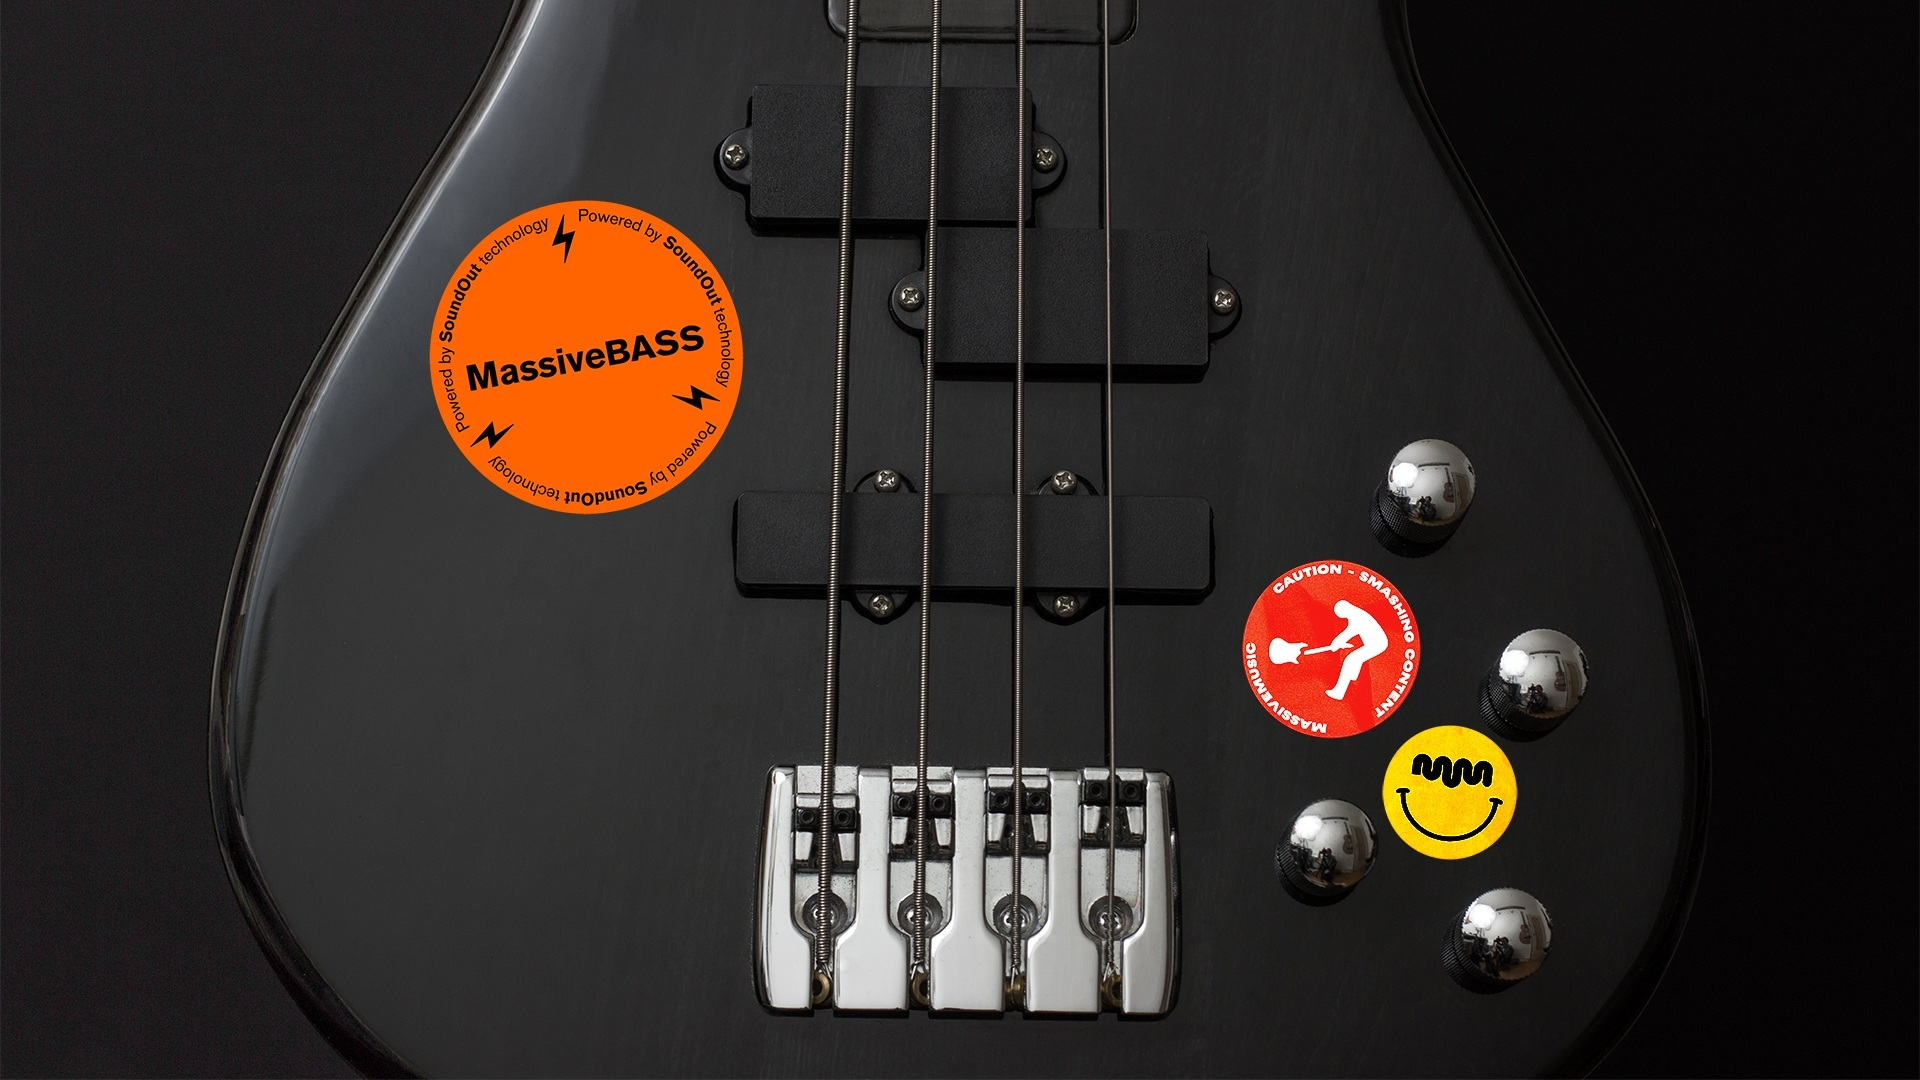 Here's How You Can Take Sonic Branding to the Next Level with MassiveBASS